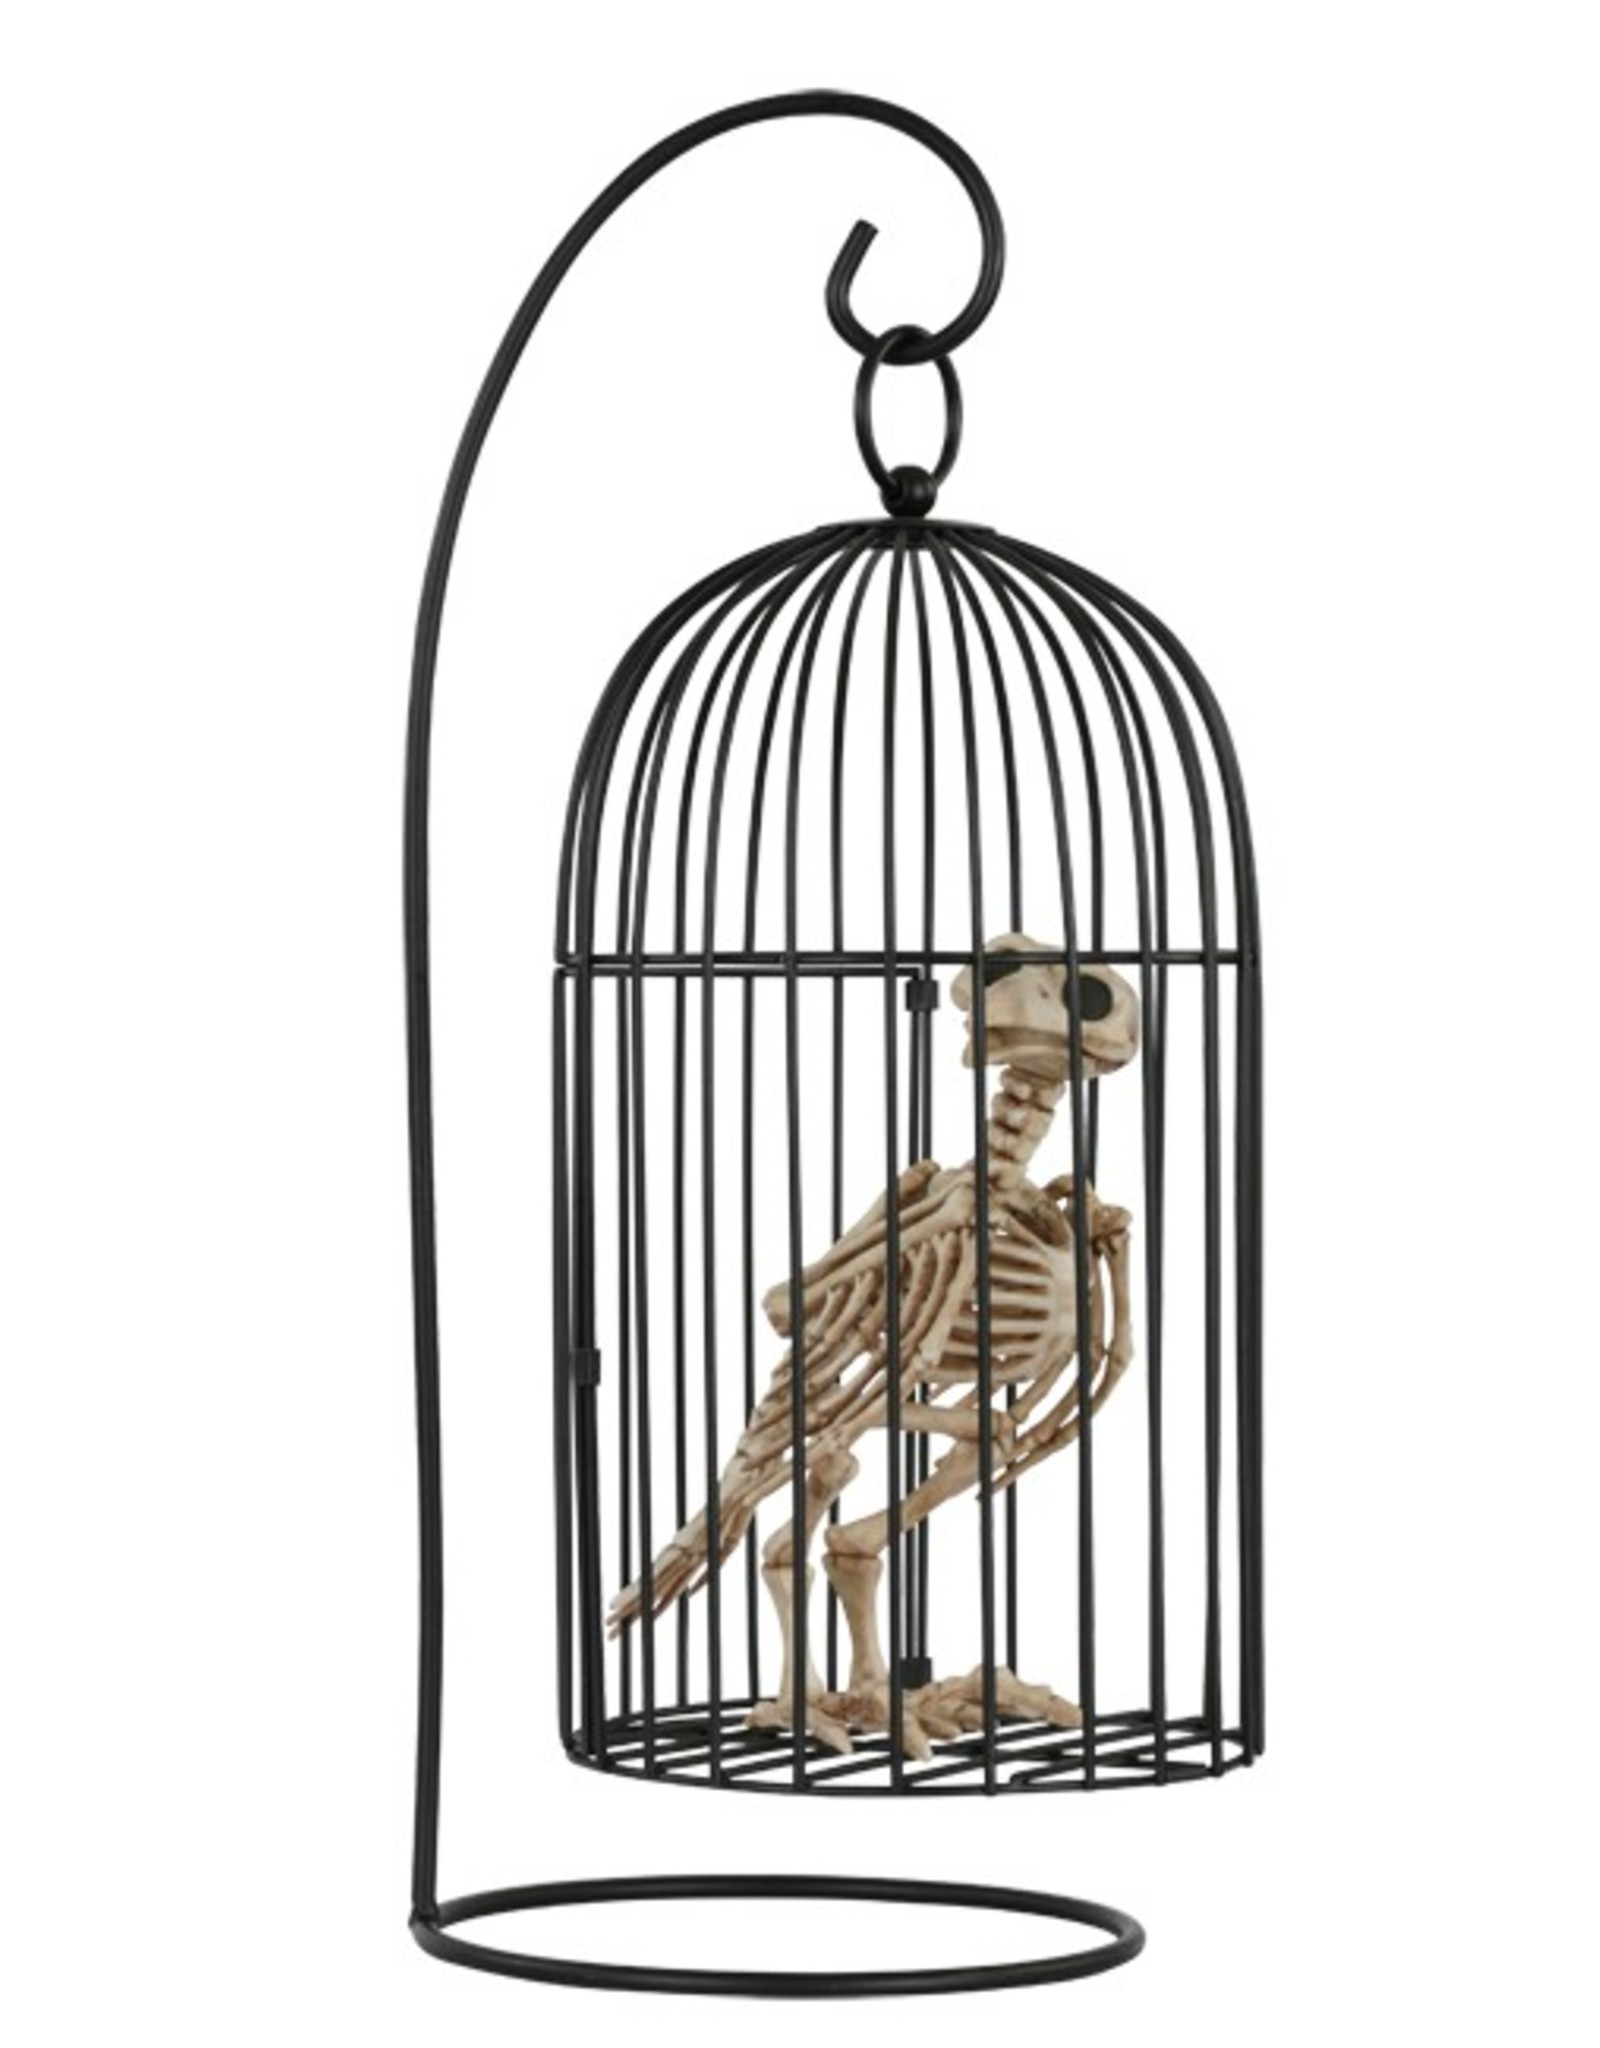 Seasons Skeleton Crow in Cage